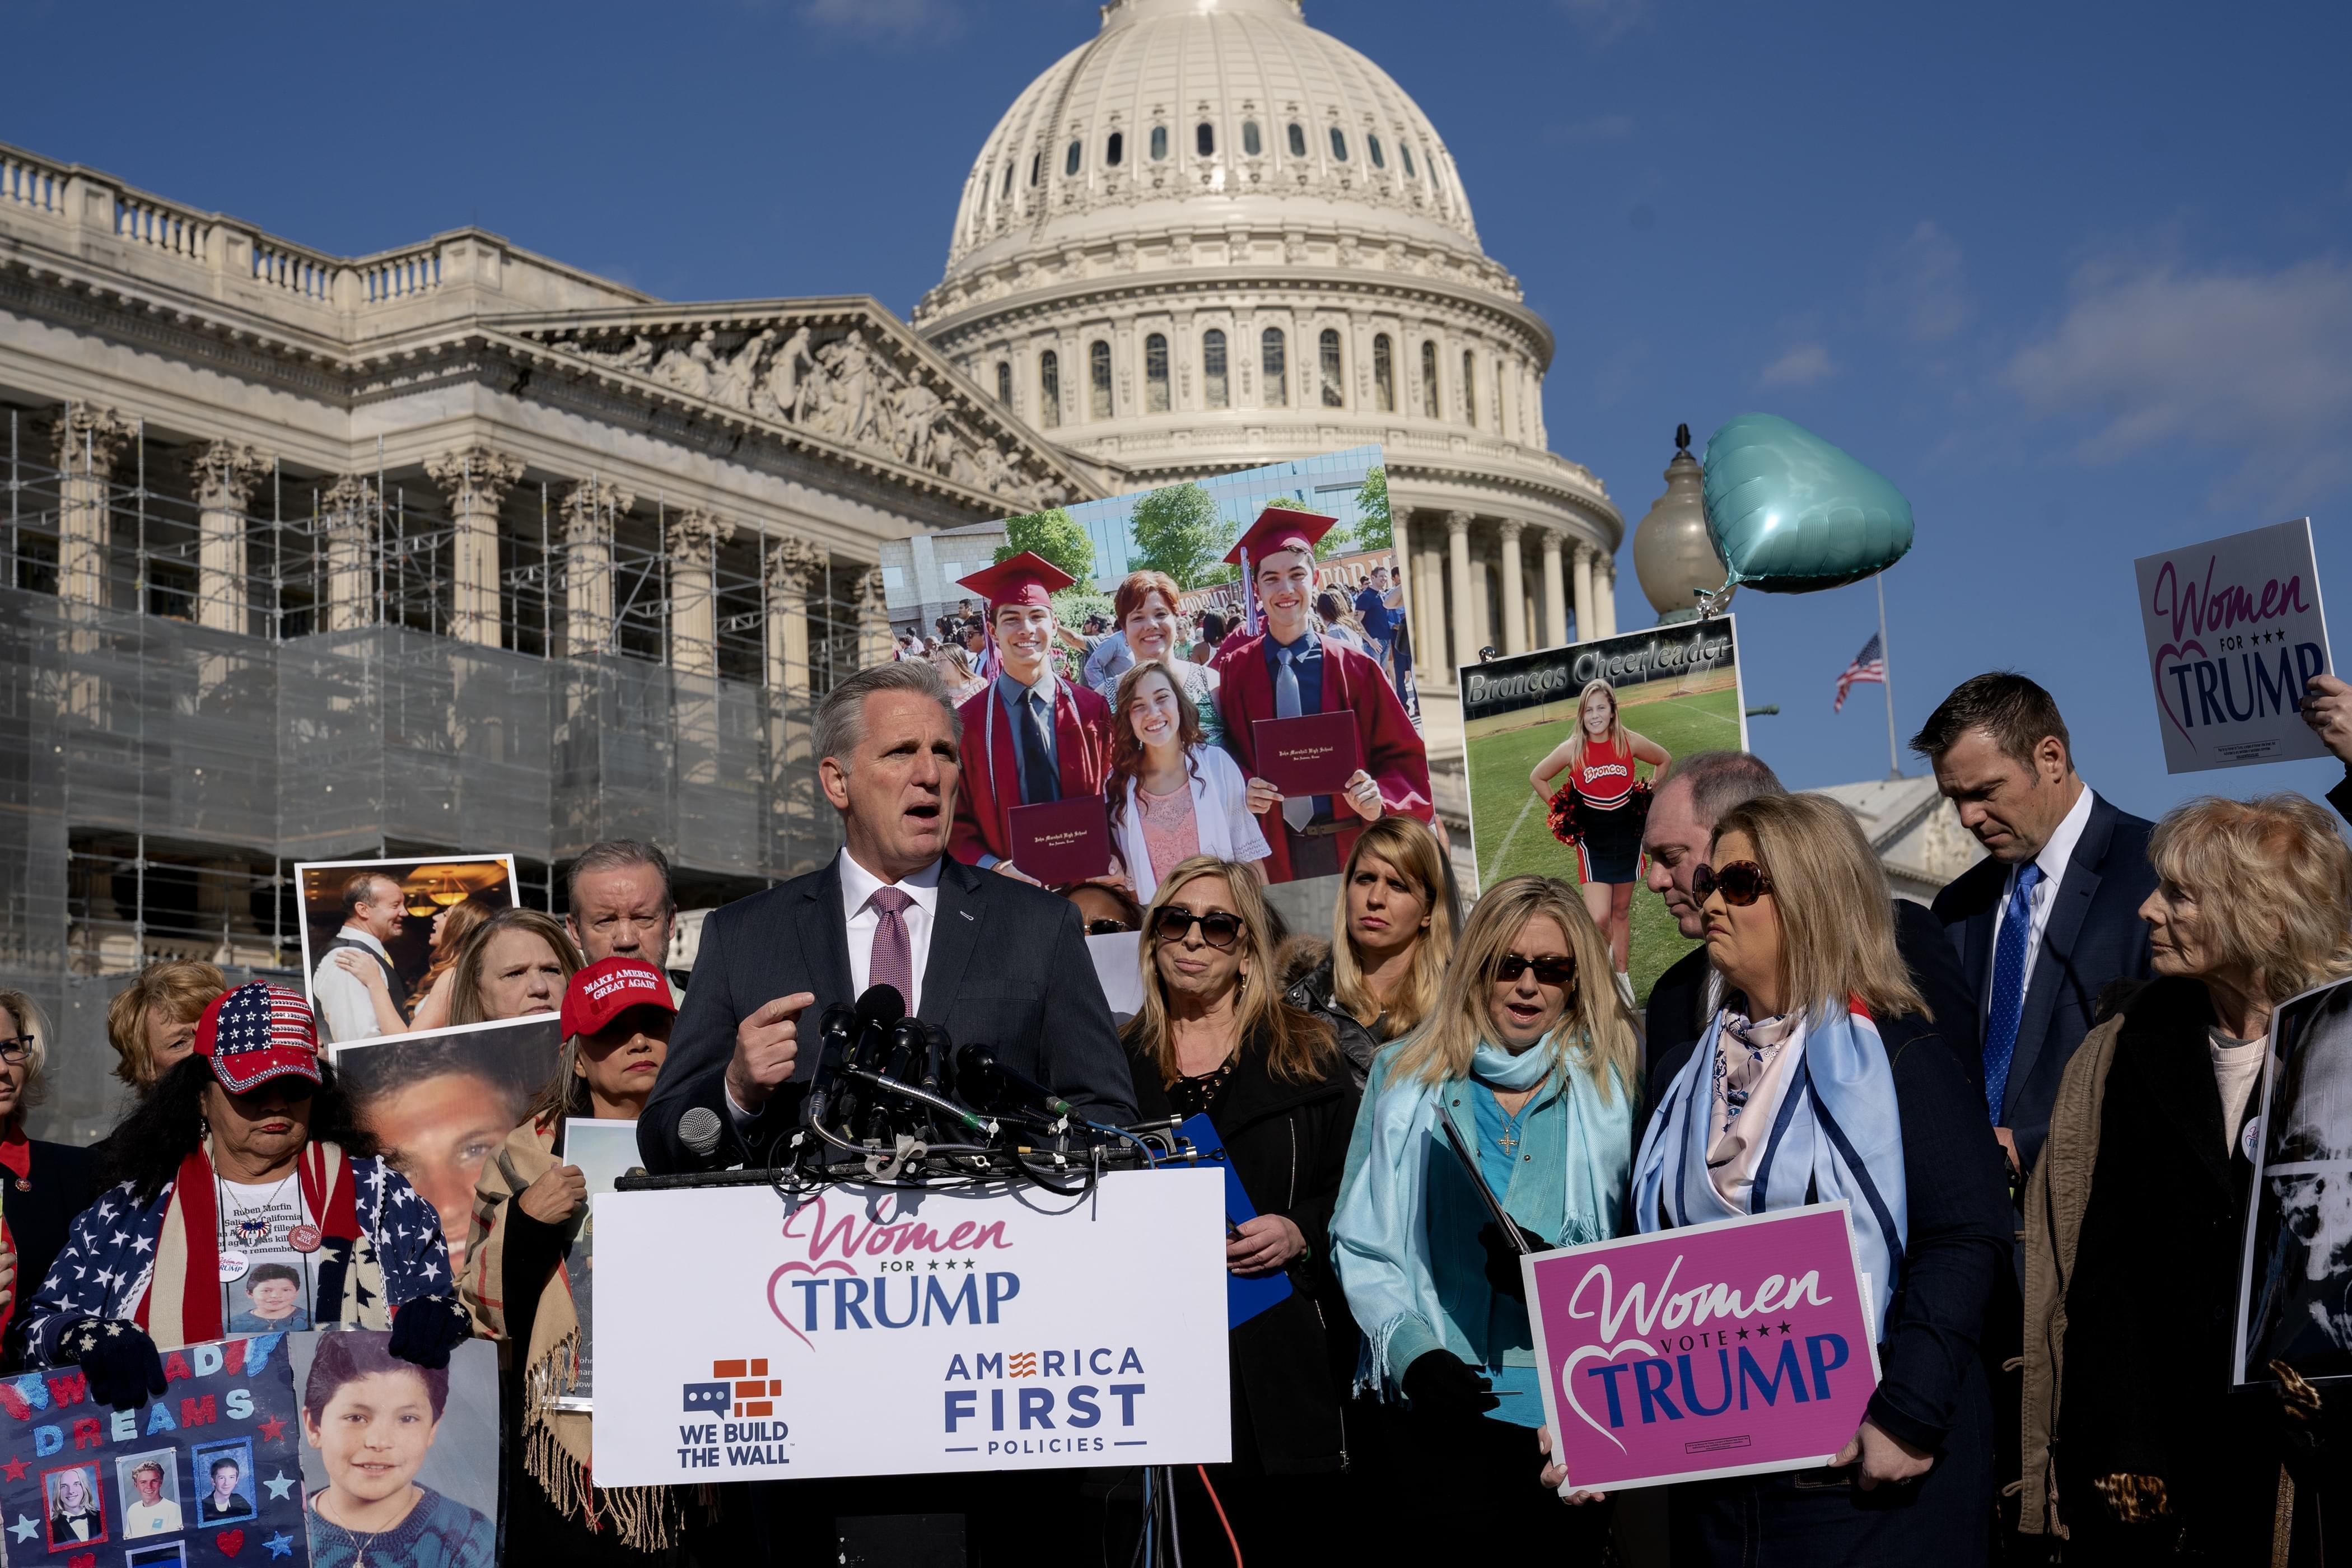 House Minority Leader Kevin McCarthy, R-Calif., joins  others supporting a border wall with Mexico, at the Capitol in Washington.